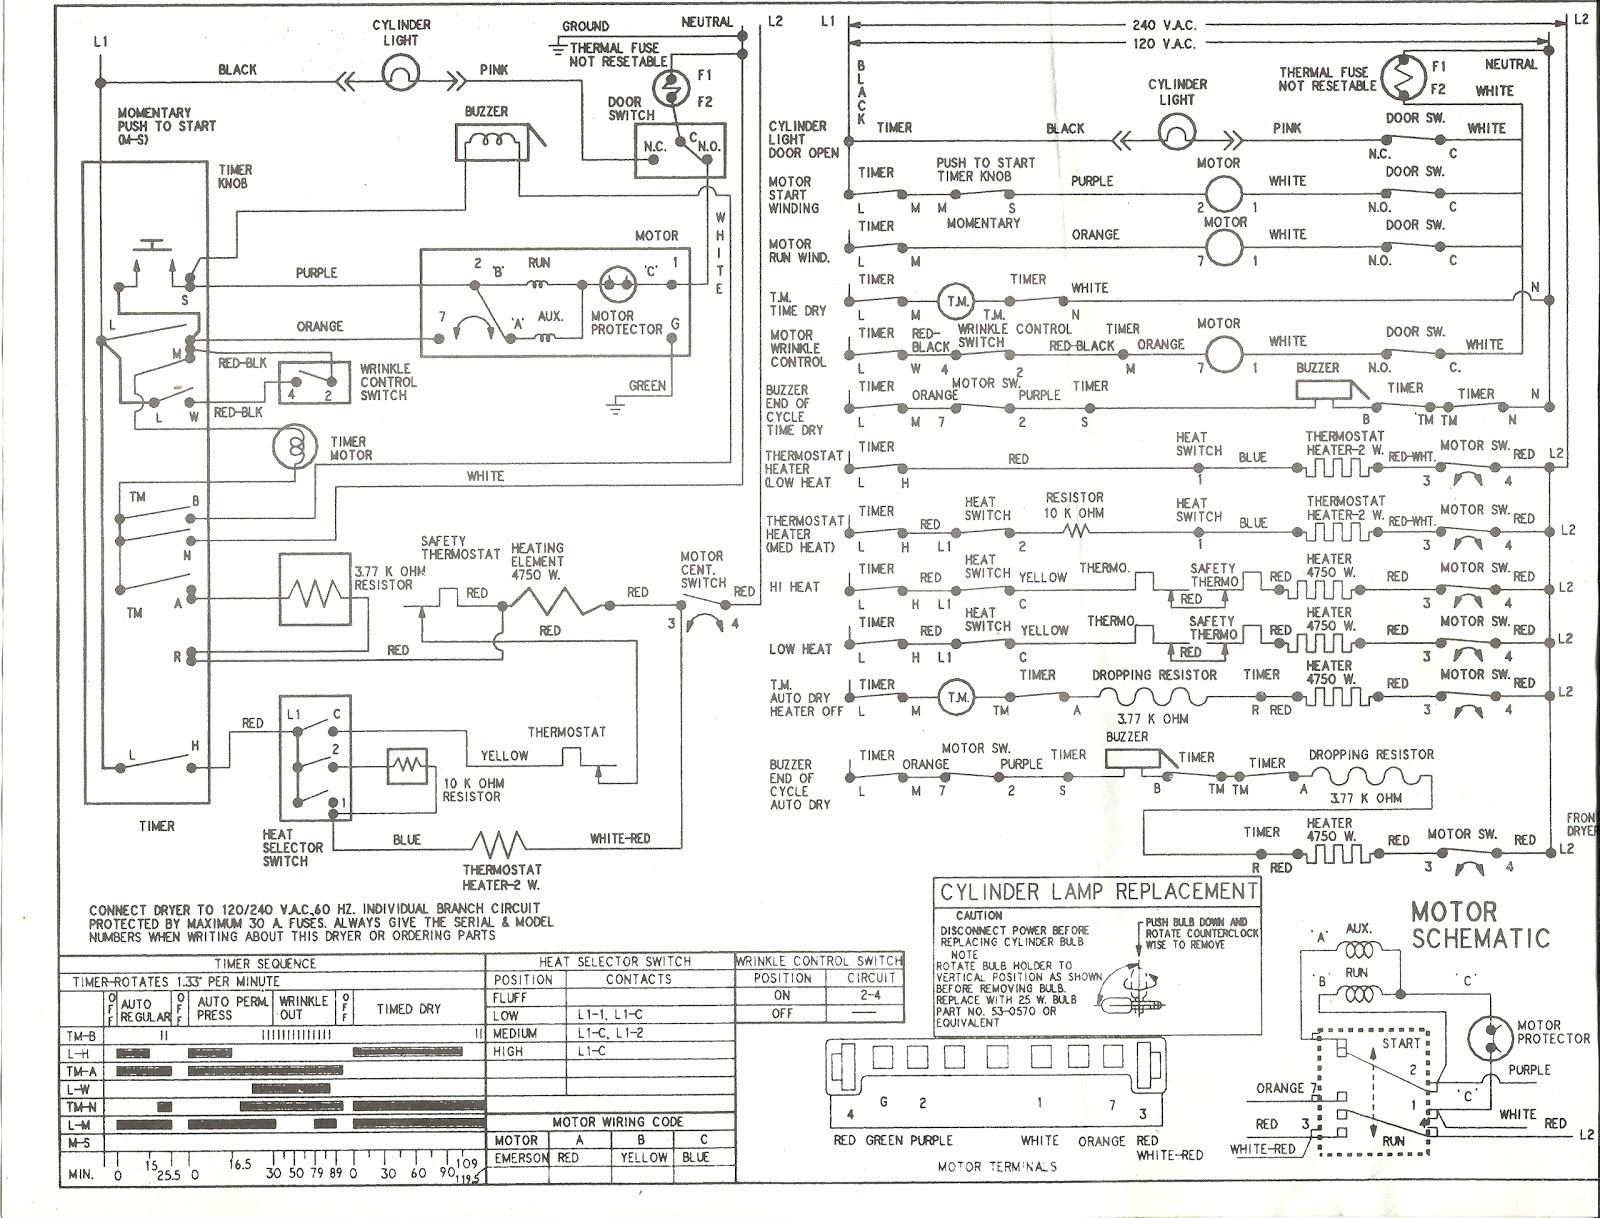 Kenmore Dryer Wiring Diagram Kenmore Dryer Wiring Diagram Fitfathers Me Que Wire Blurts Of Kenmore Dryer Wiring Diagram